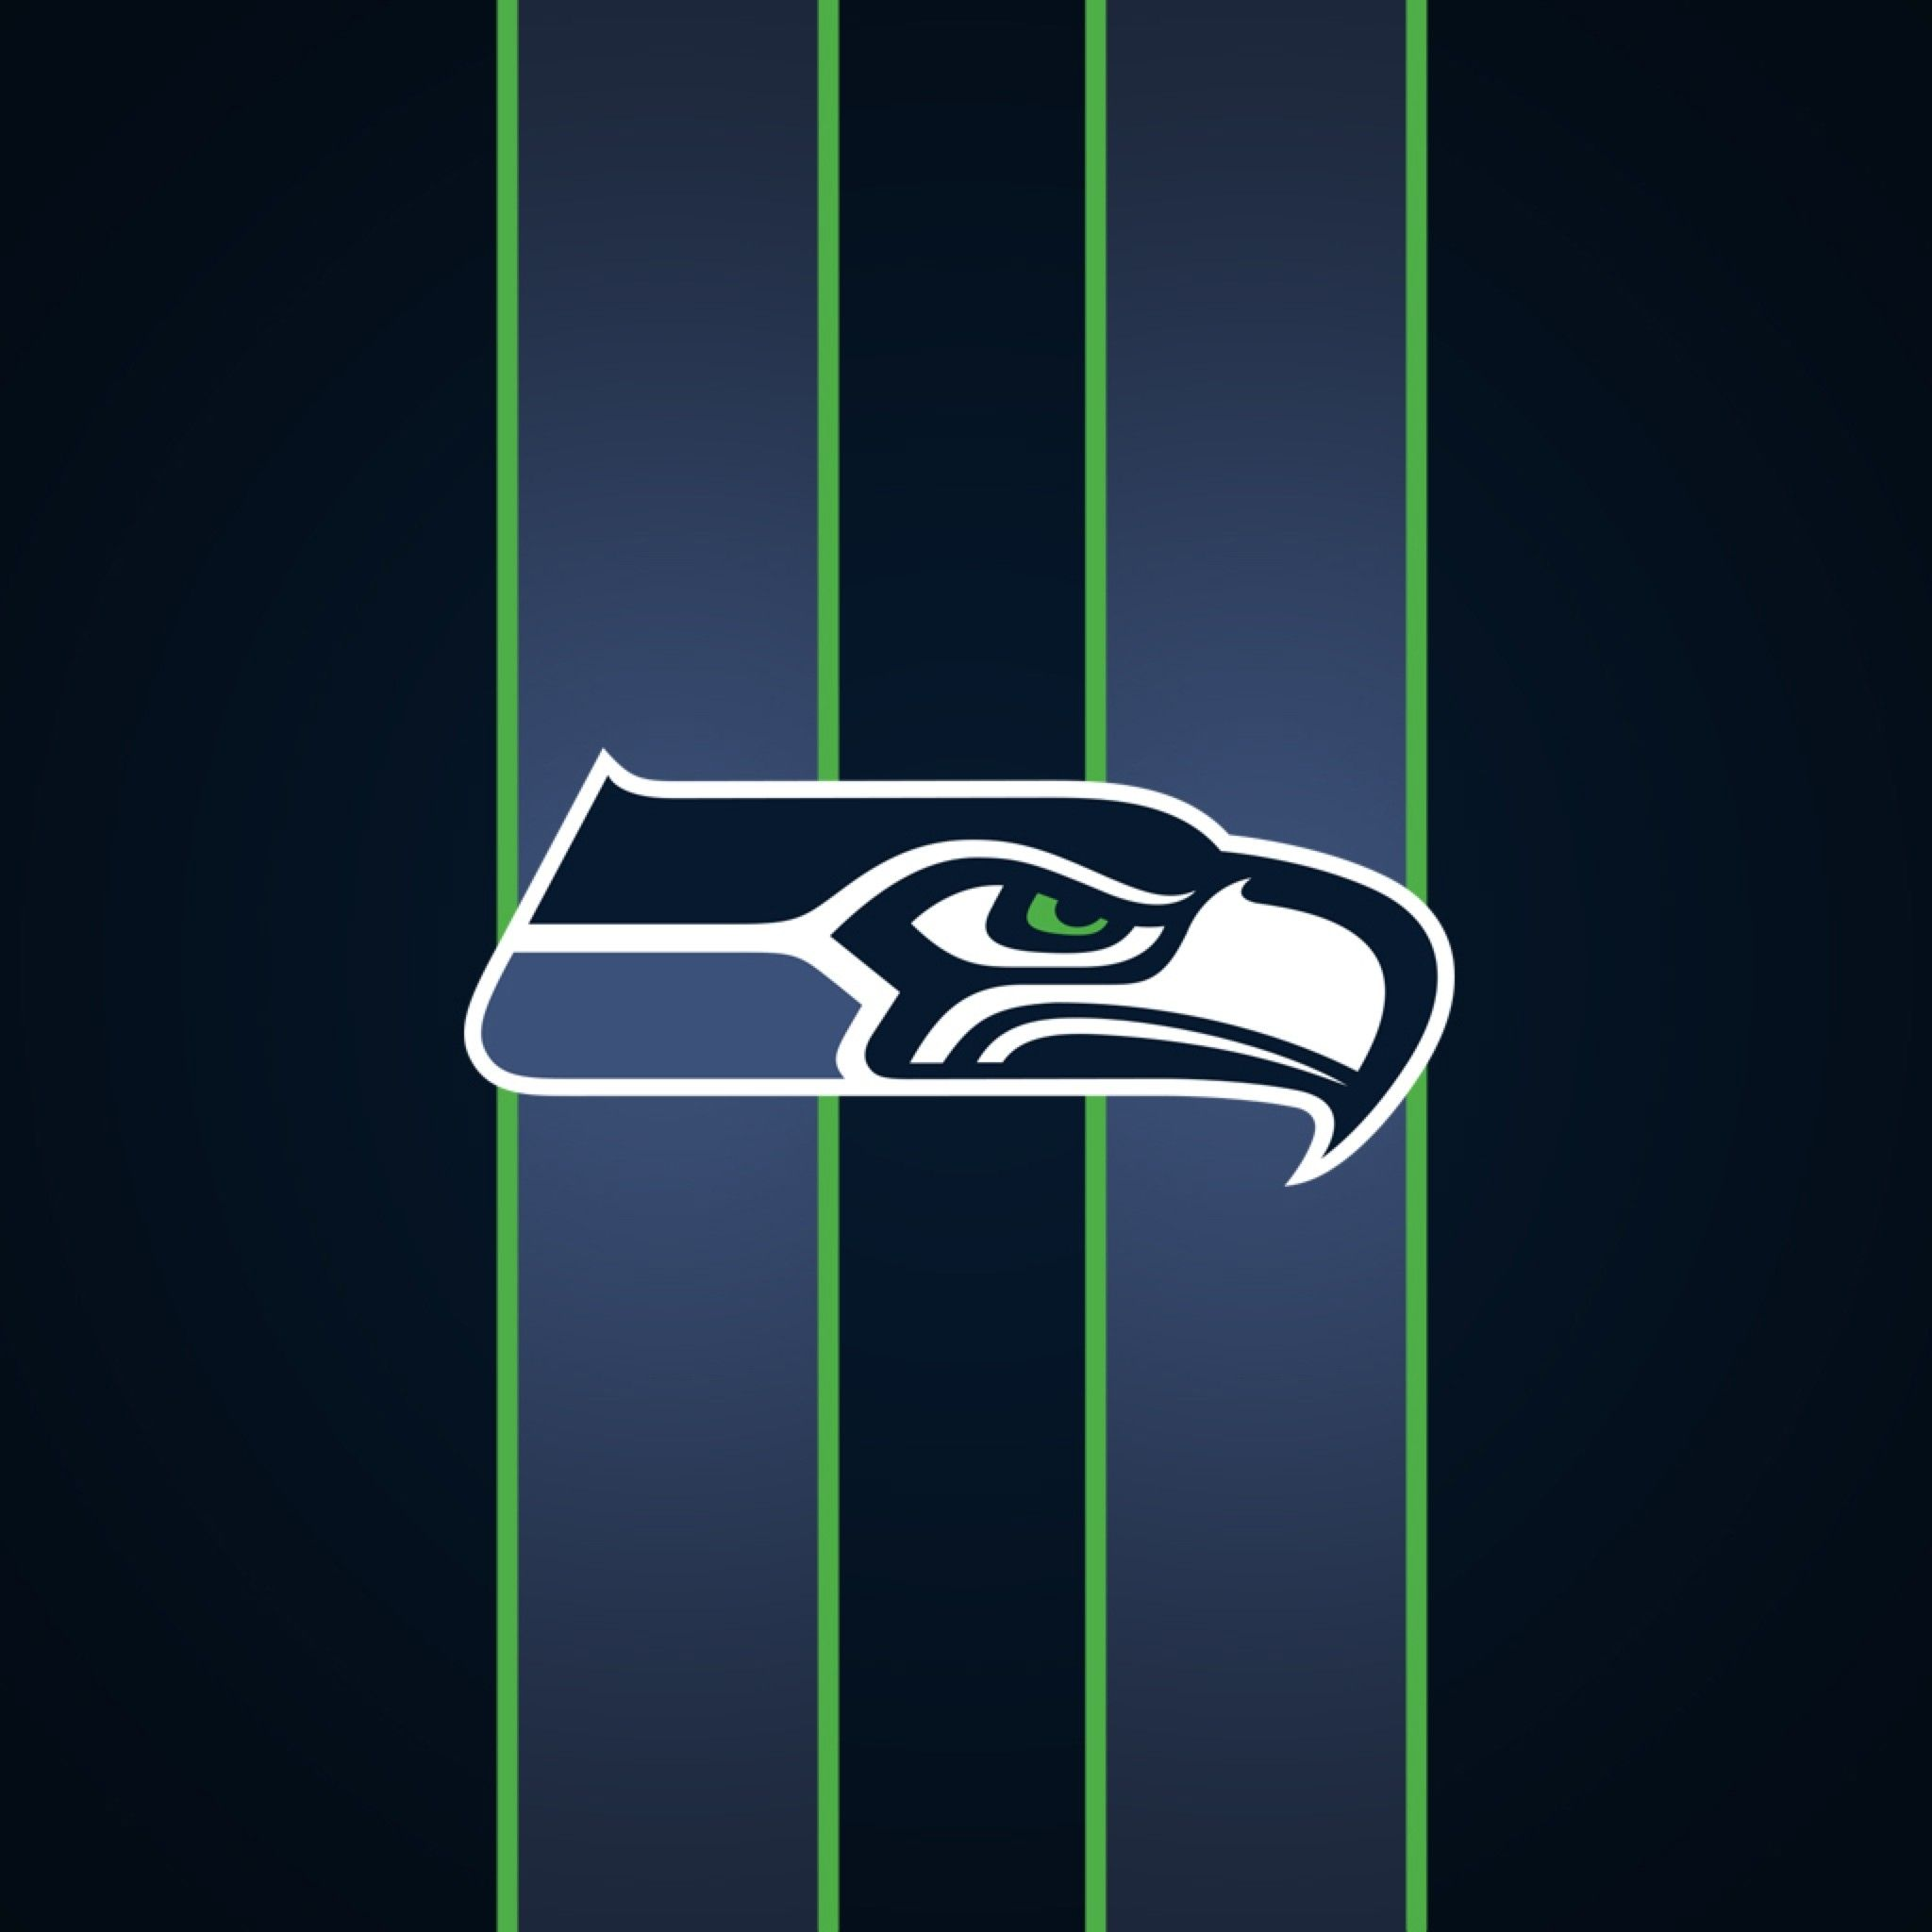 Seattle Seahawks Wallpapers Mywallpapers Site In 2020 Seattle Seahawks Logo Seattle Seahawks Seahawks